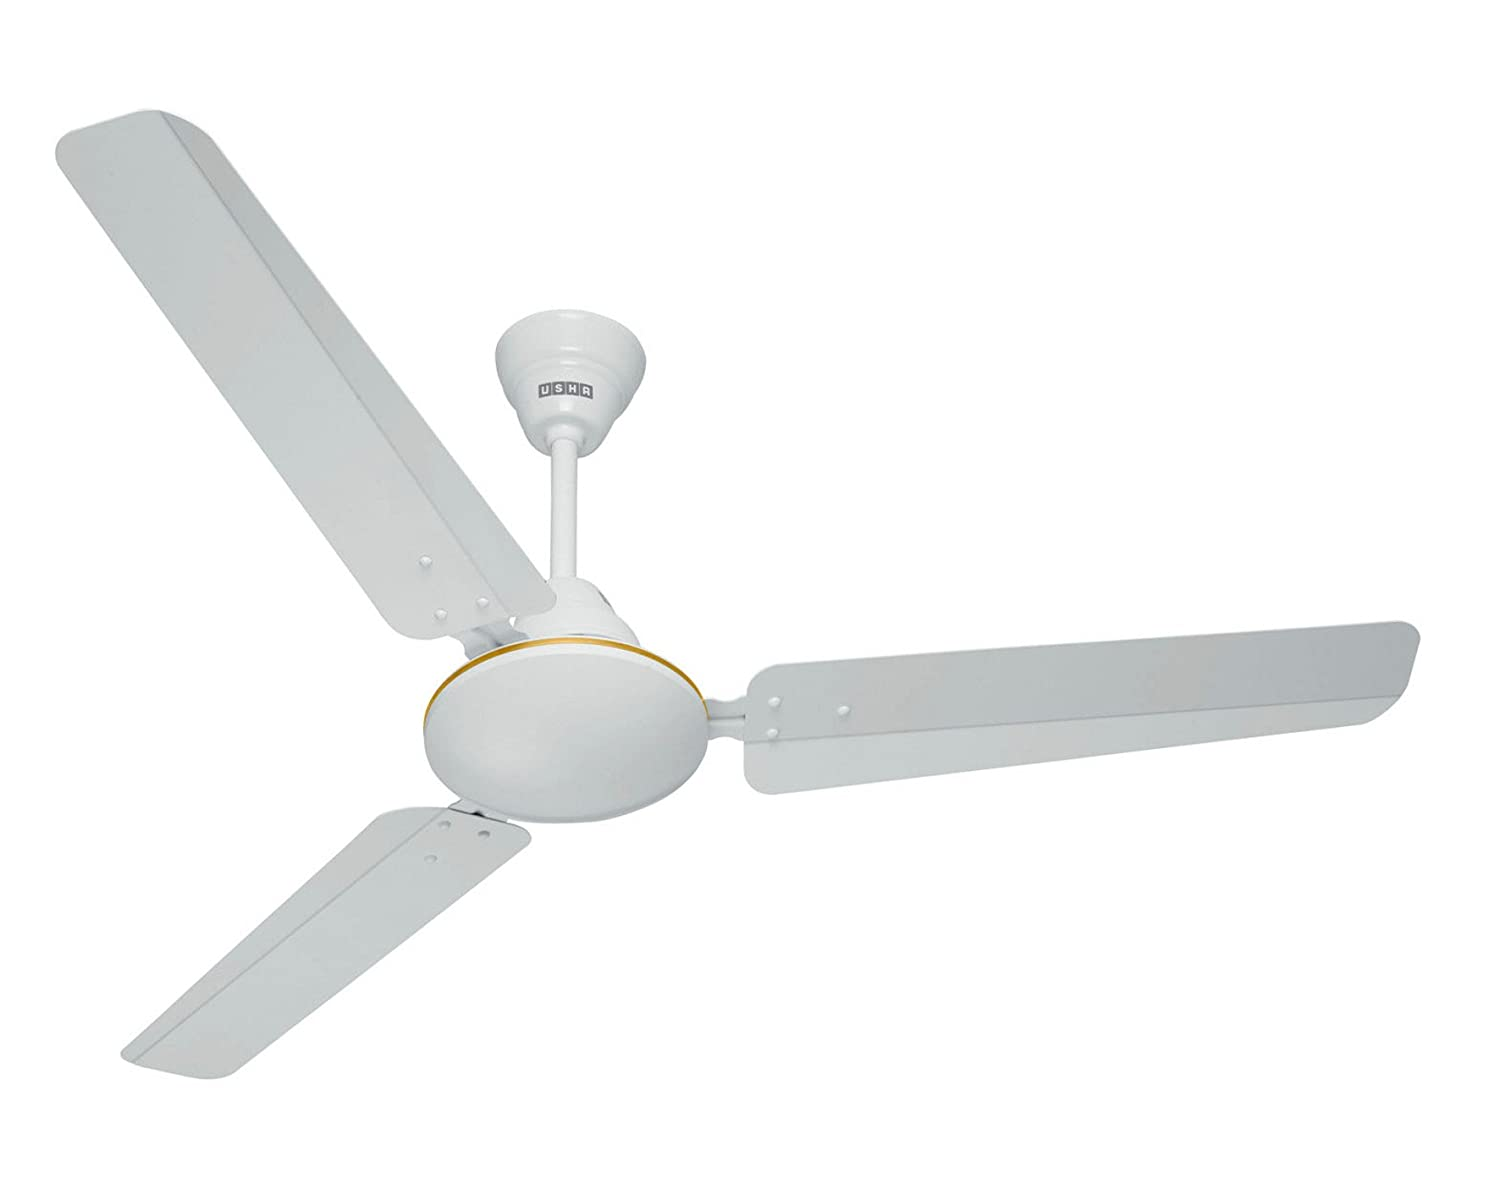 56f0996bf98 Buy Usha Technix 1200mm 43-Watt 5 Star Energy Saving Ceiling Fan (New  White) Online at Low Prices in India - Amazon.in